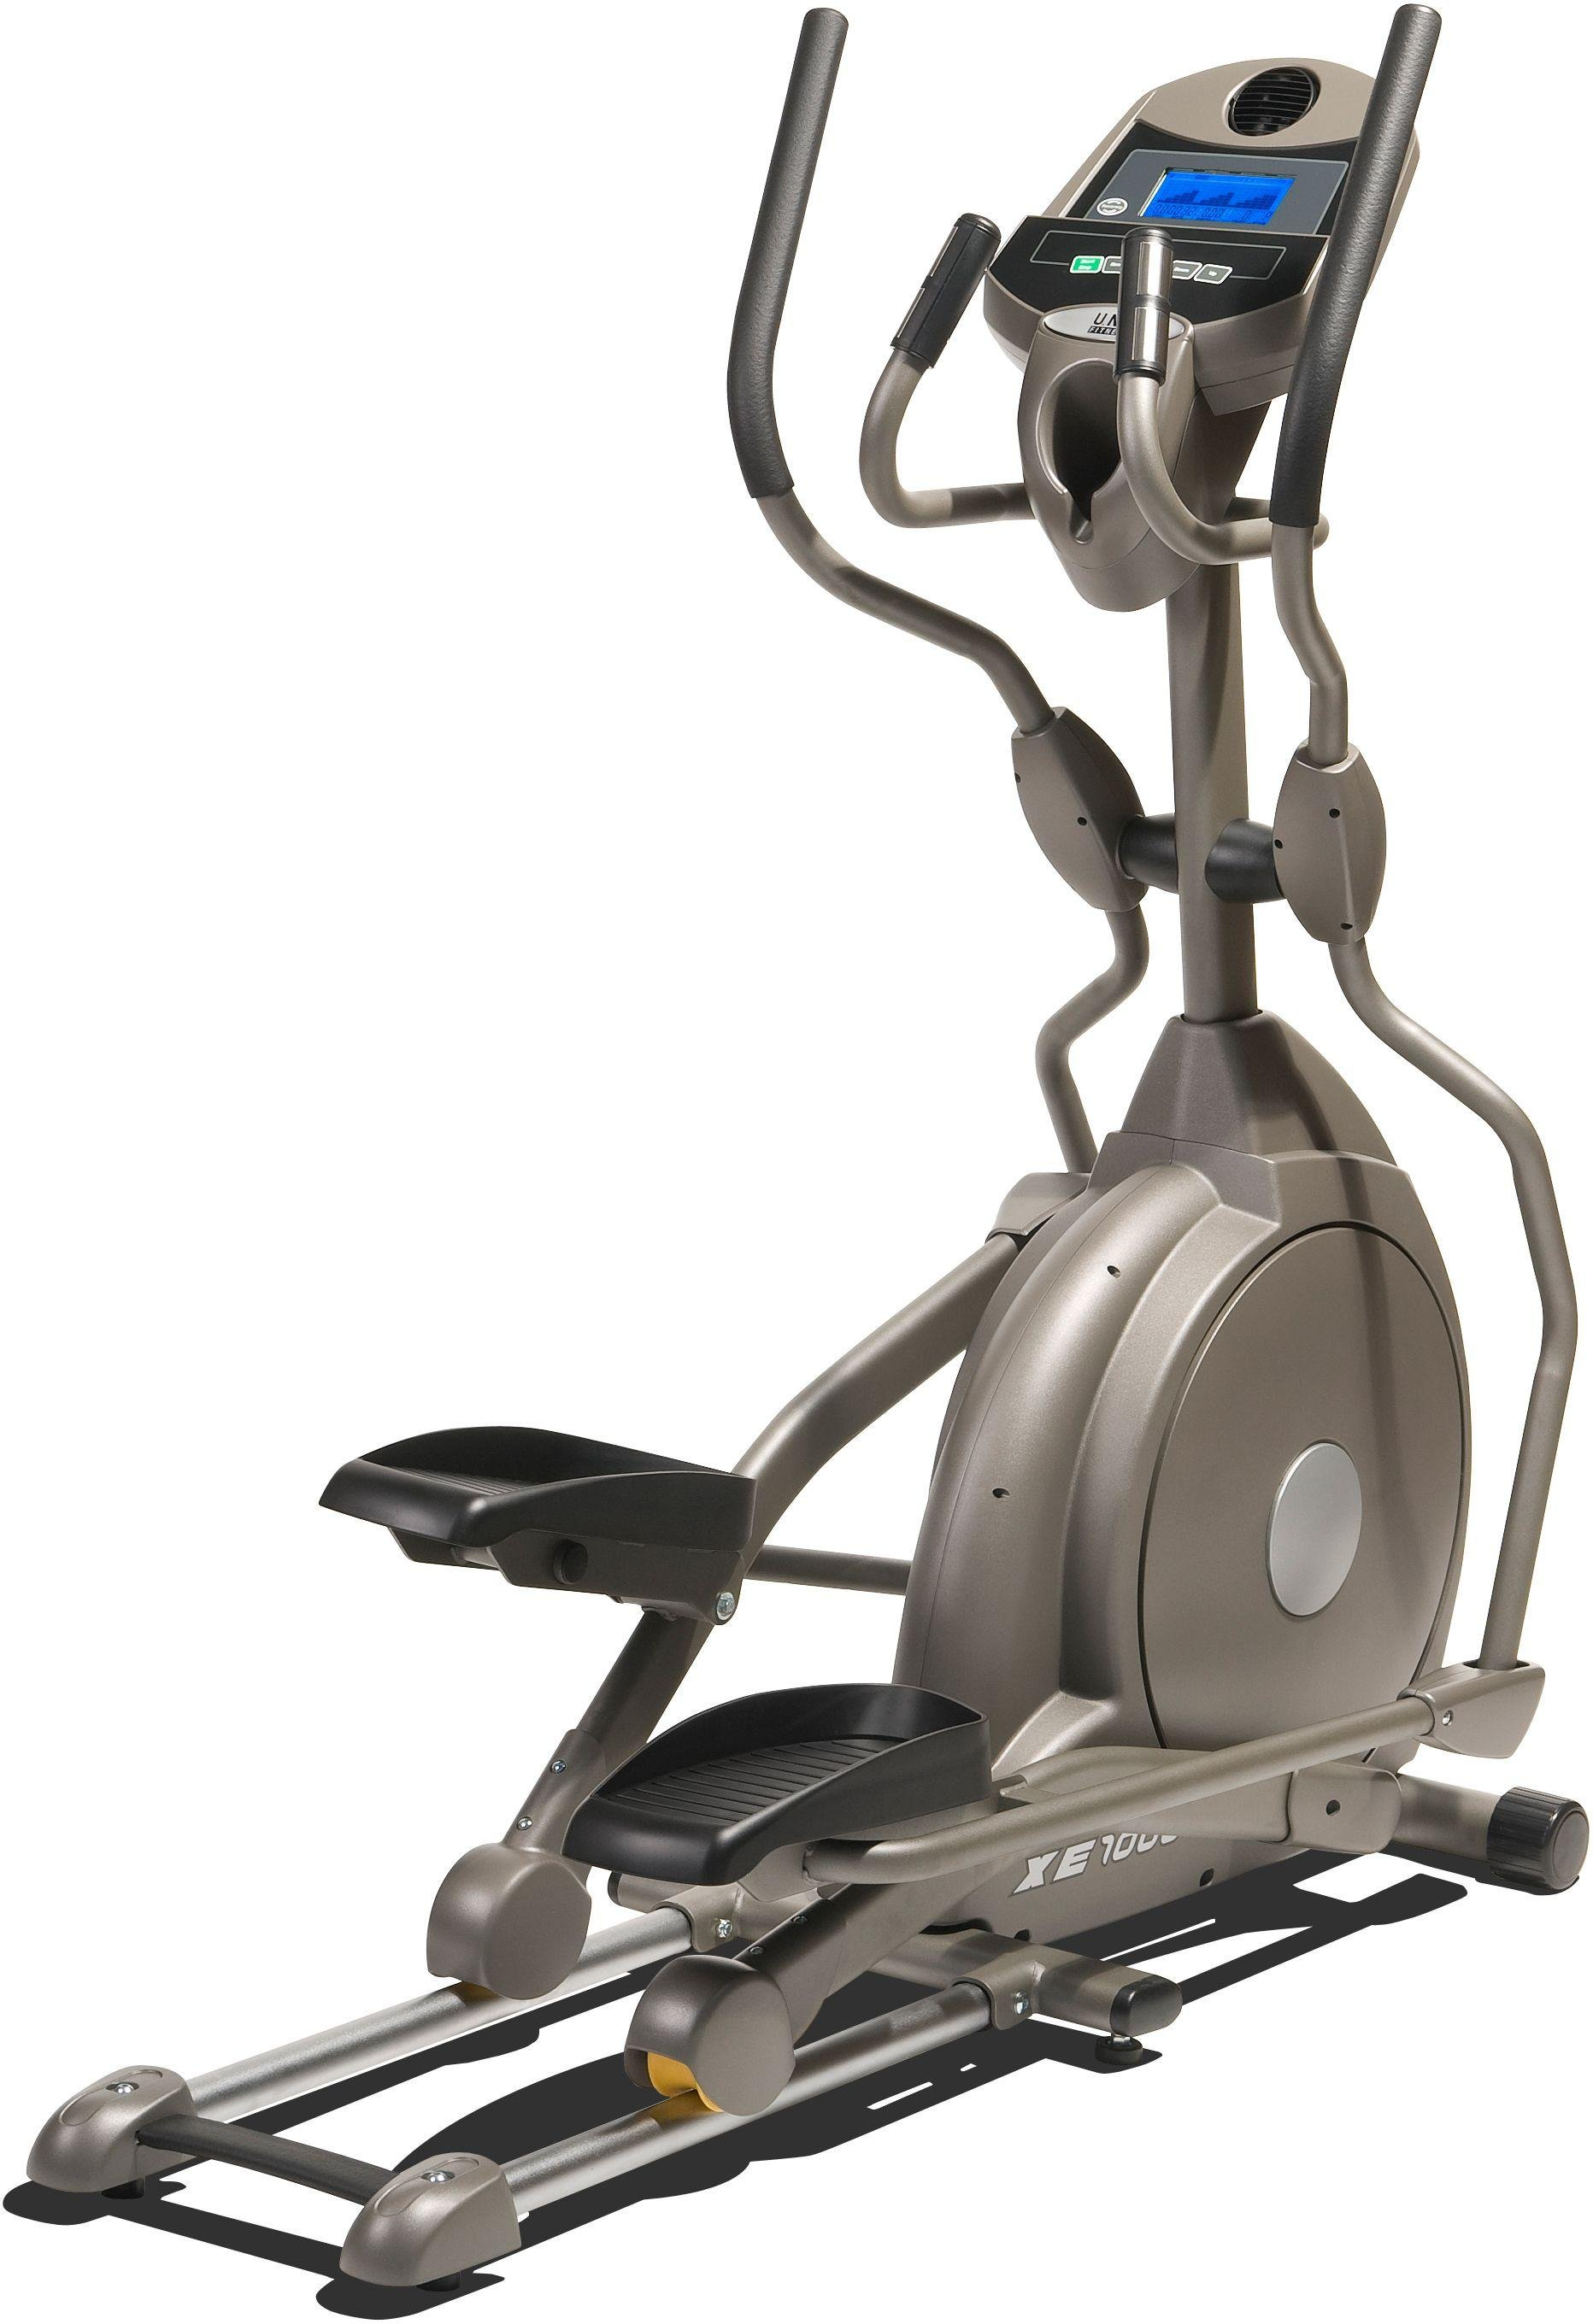 UNO Fitness UNO Fitness XE1000 Magnetic Cross Trainer.